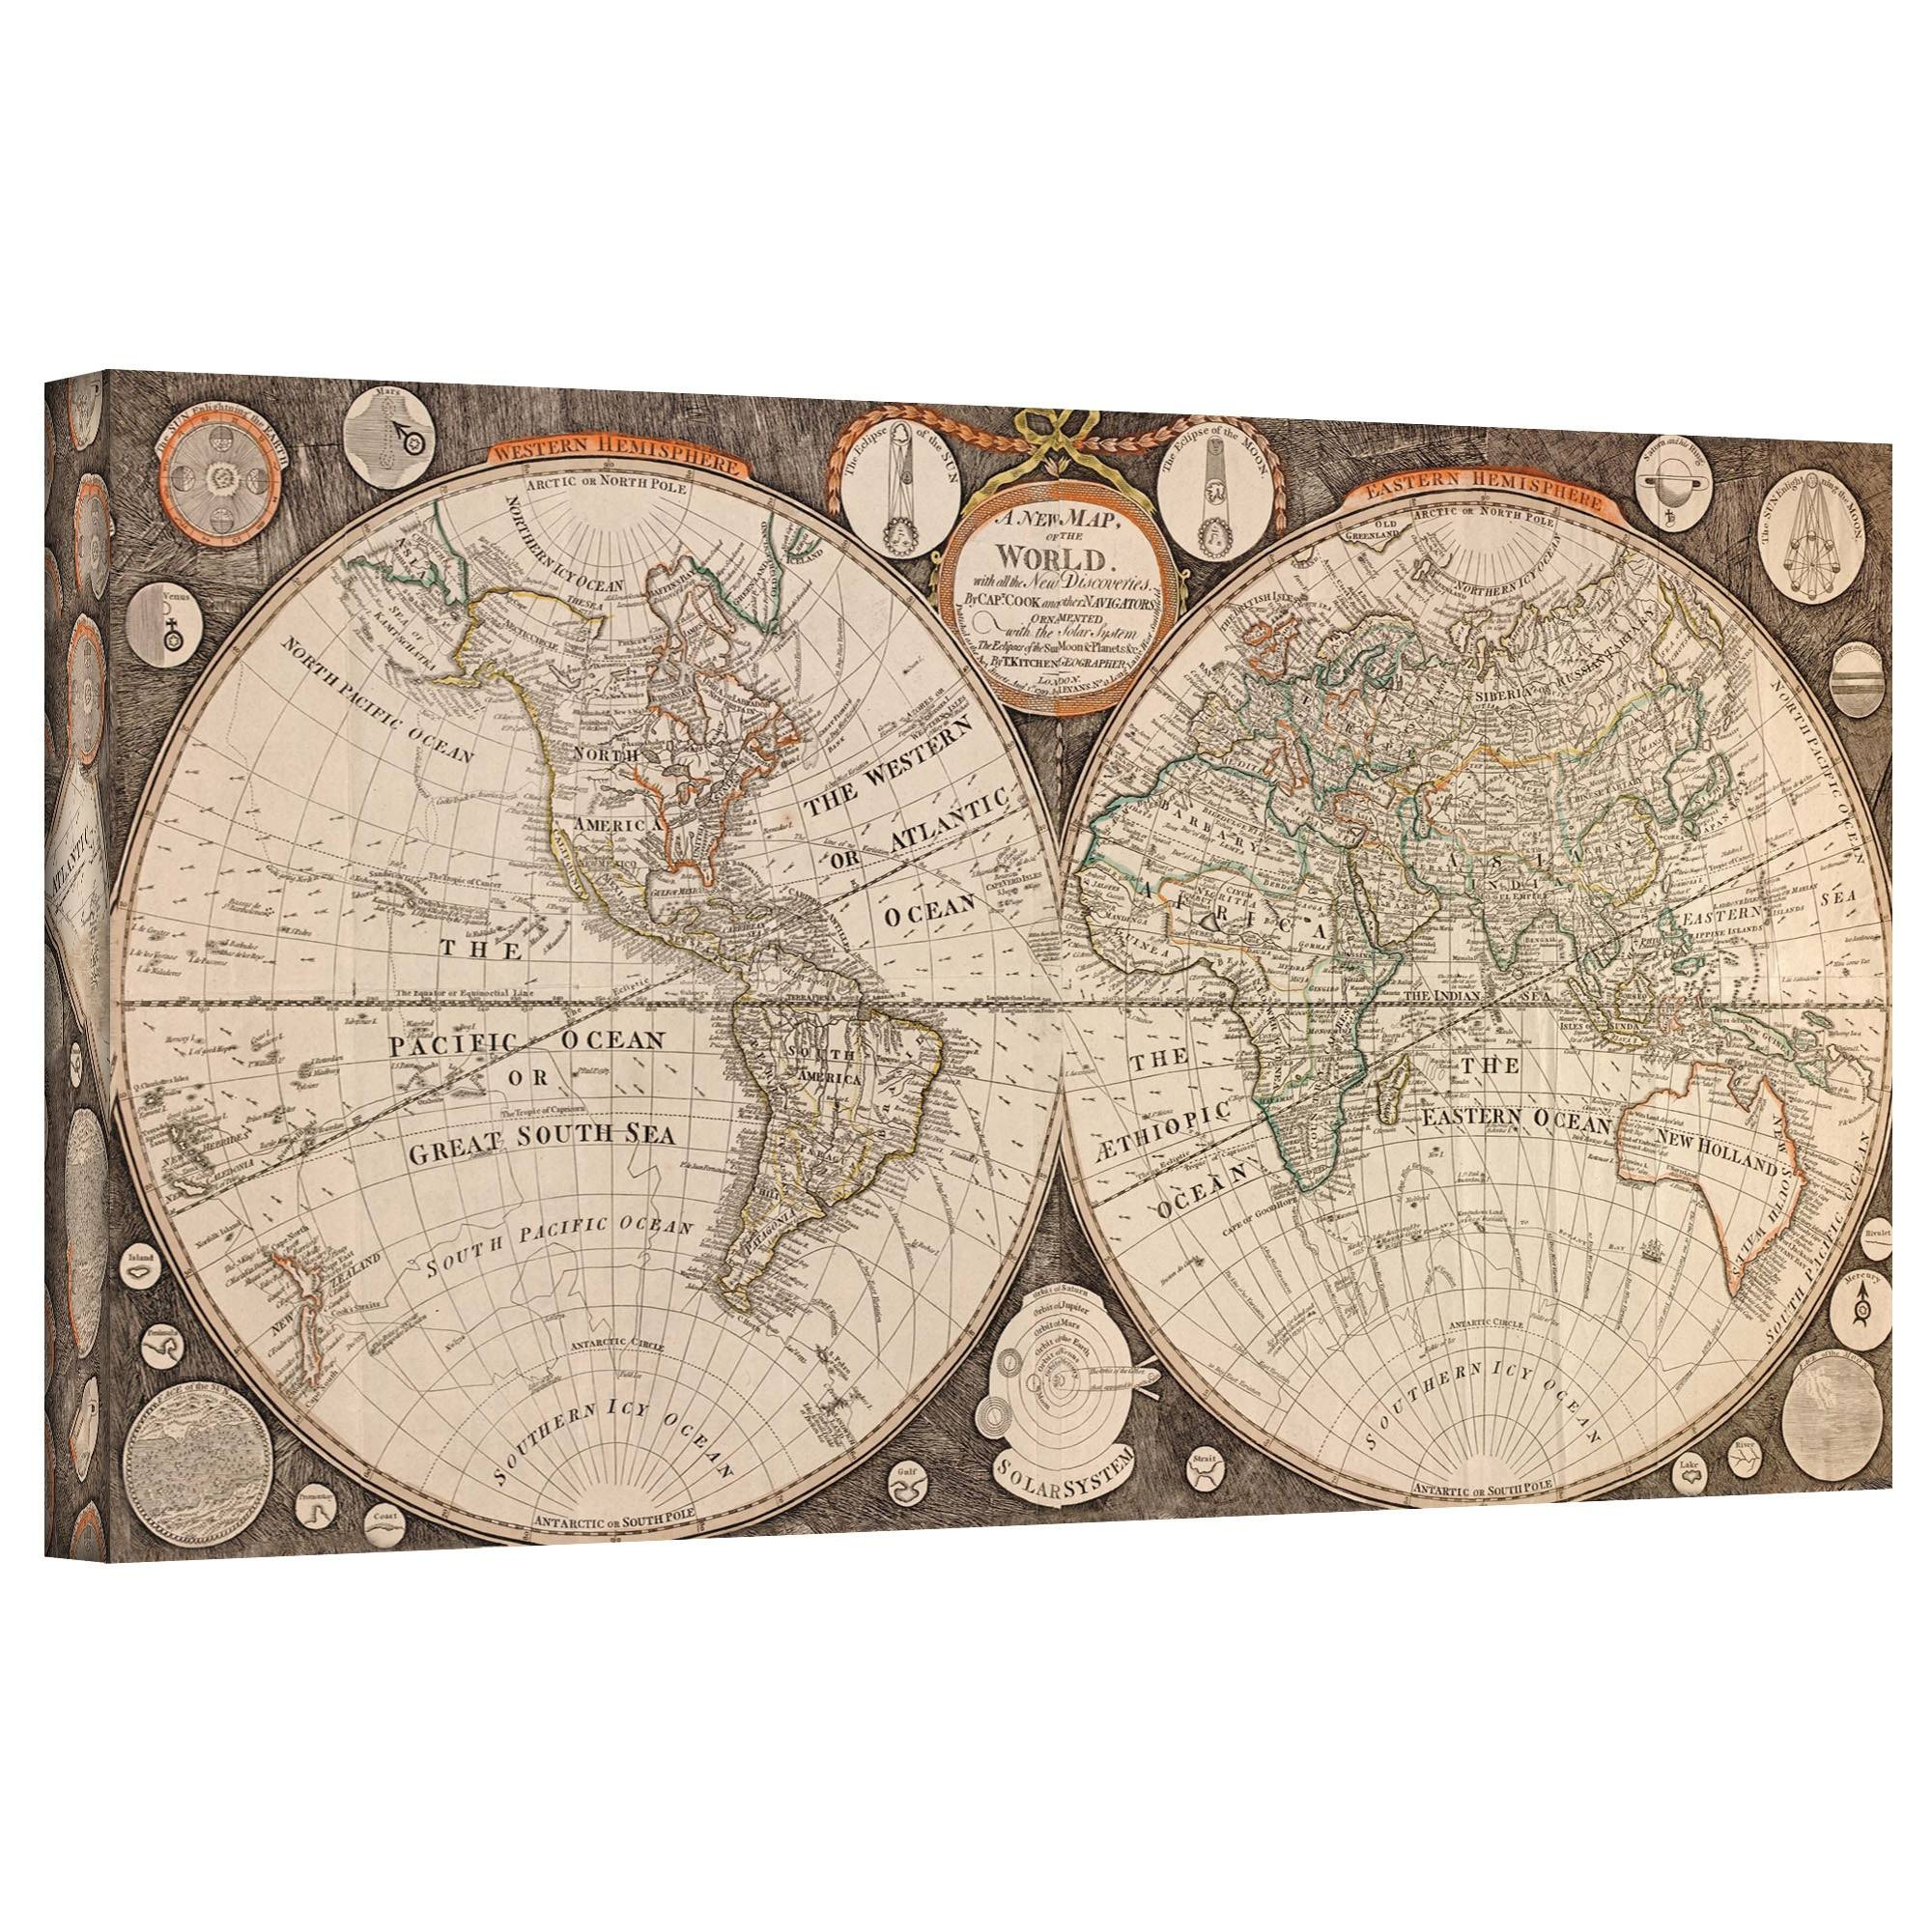 Wall Art Designs: Awesome Antique Map Wall Art Vintage Map Wall Pertaining To 2017 Antique Map Wall Art (View 5 of 20)